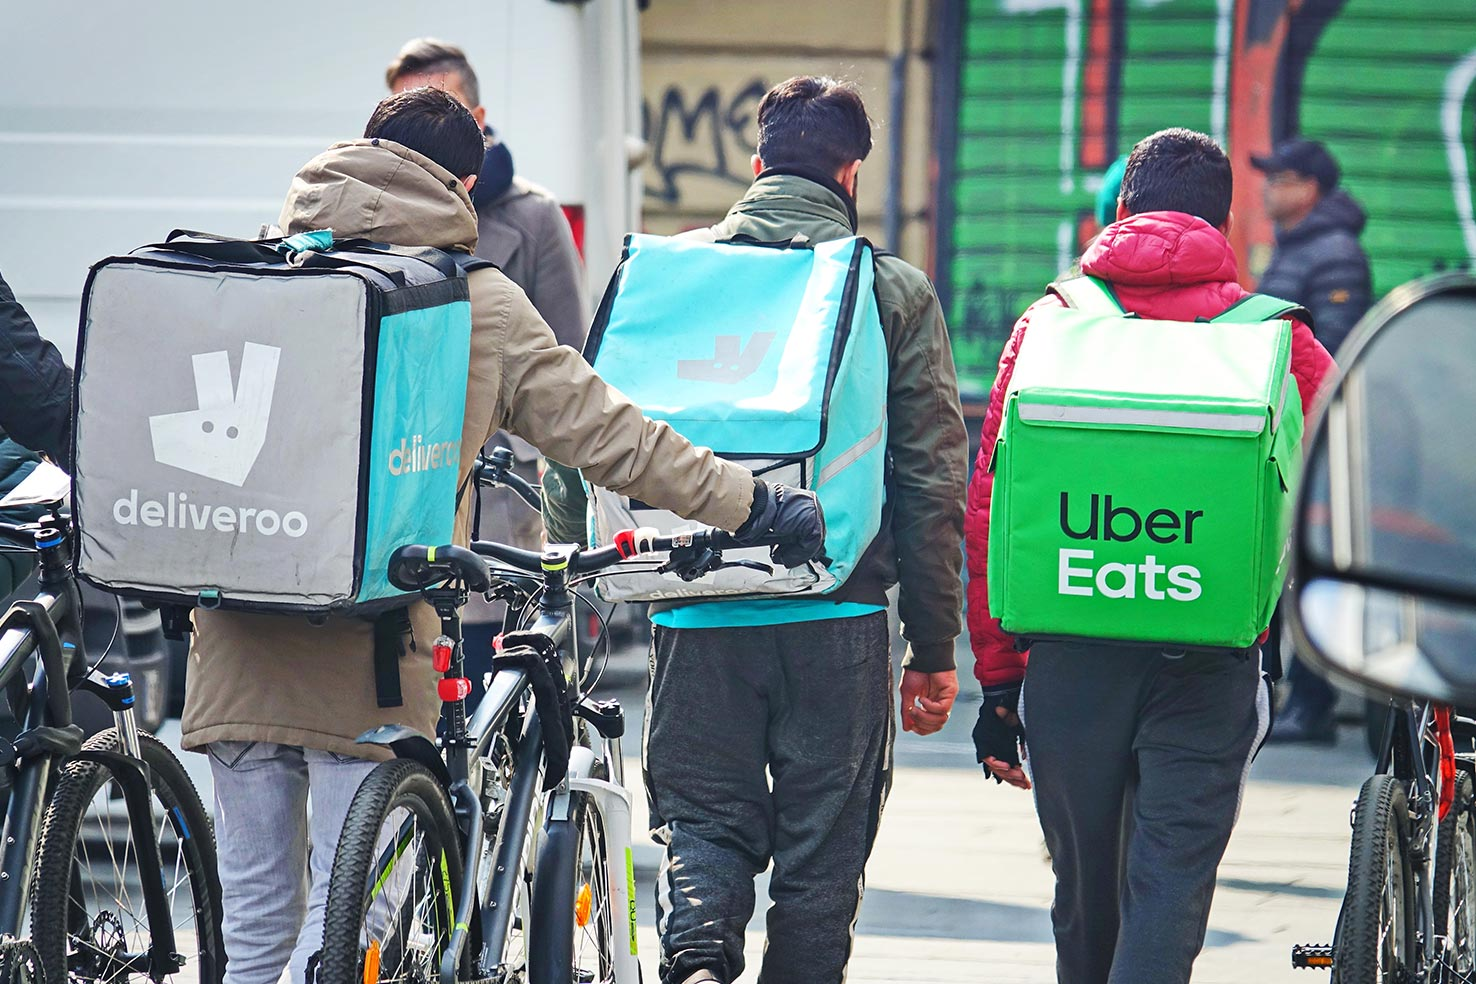 Employee or contractor? What the Deliveroo case could mean for your workers